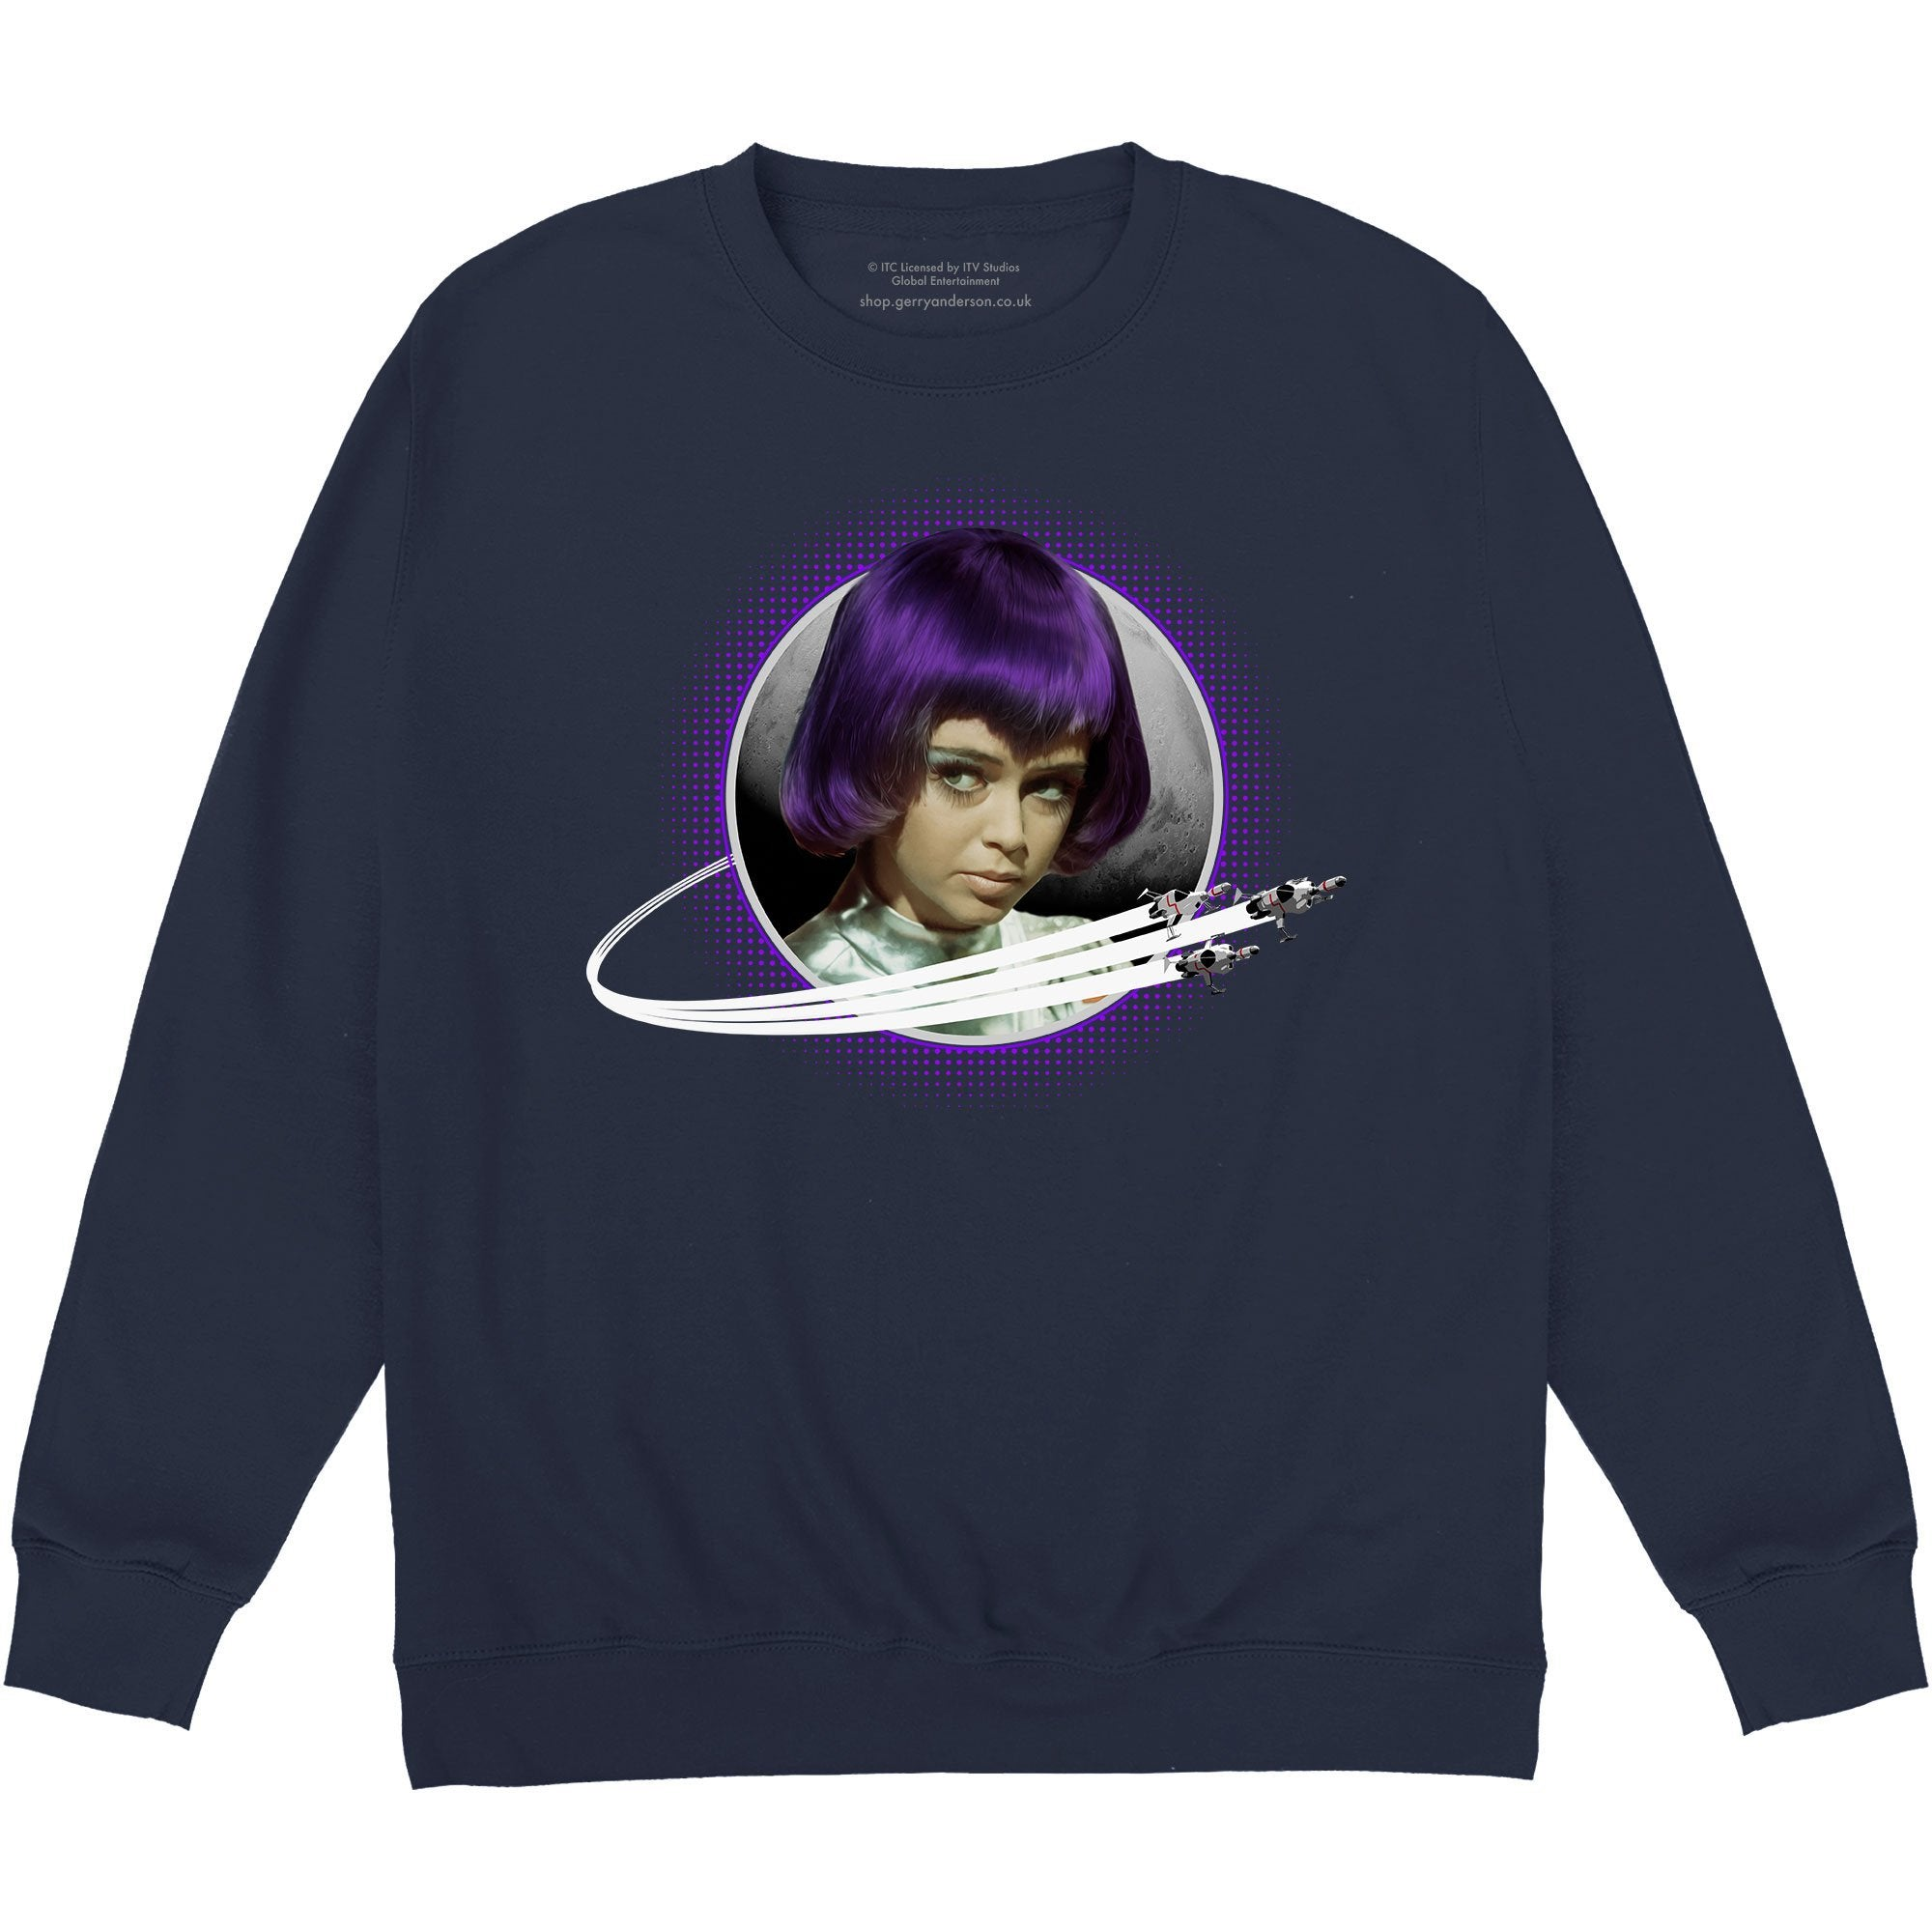 UFO Sweatshirt Featuring Lt. Gay Ellis [Official & Exclusive] - The Gerry Anderson Store